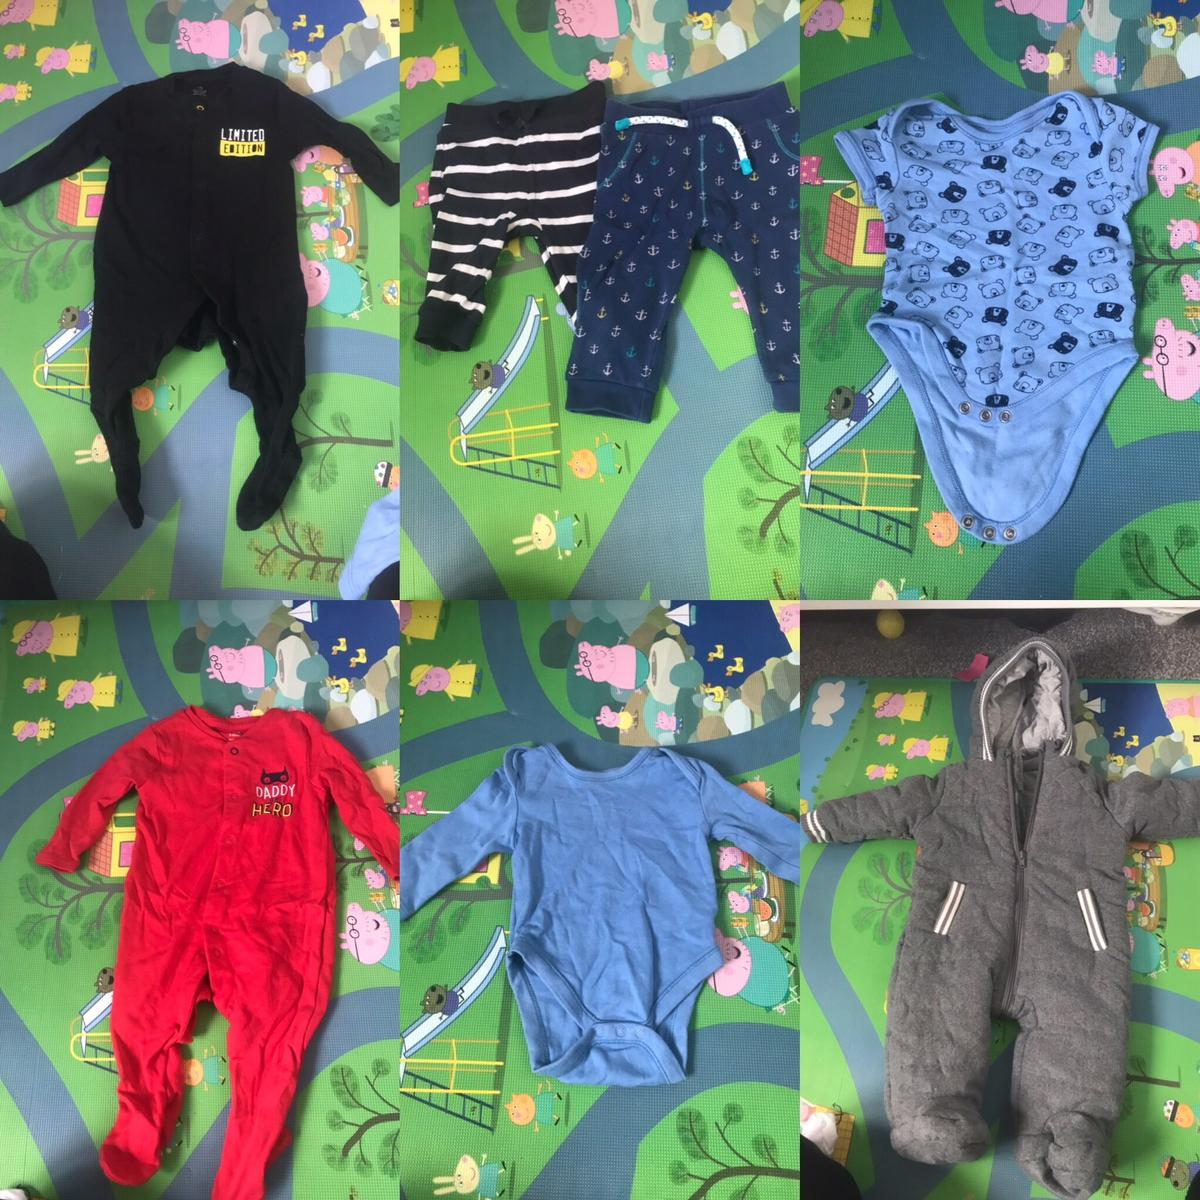 3 6 Month Baby Boy Clothes In Le3 Blaby Fur 10 00 Kaufen Shpock